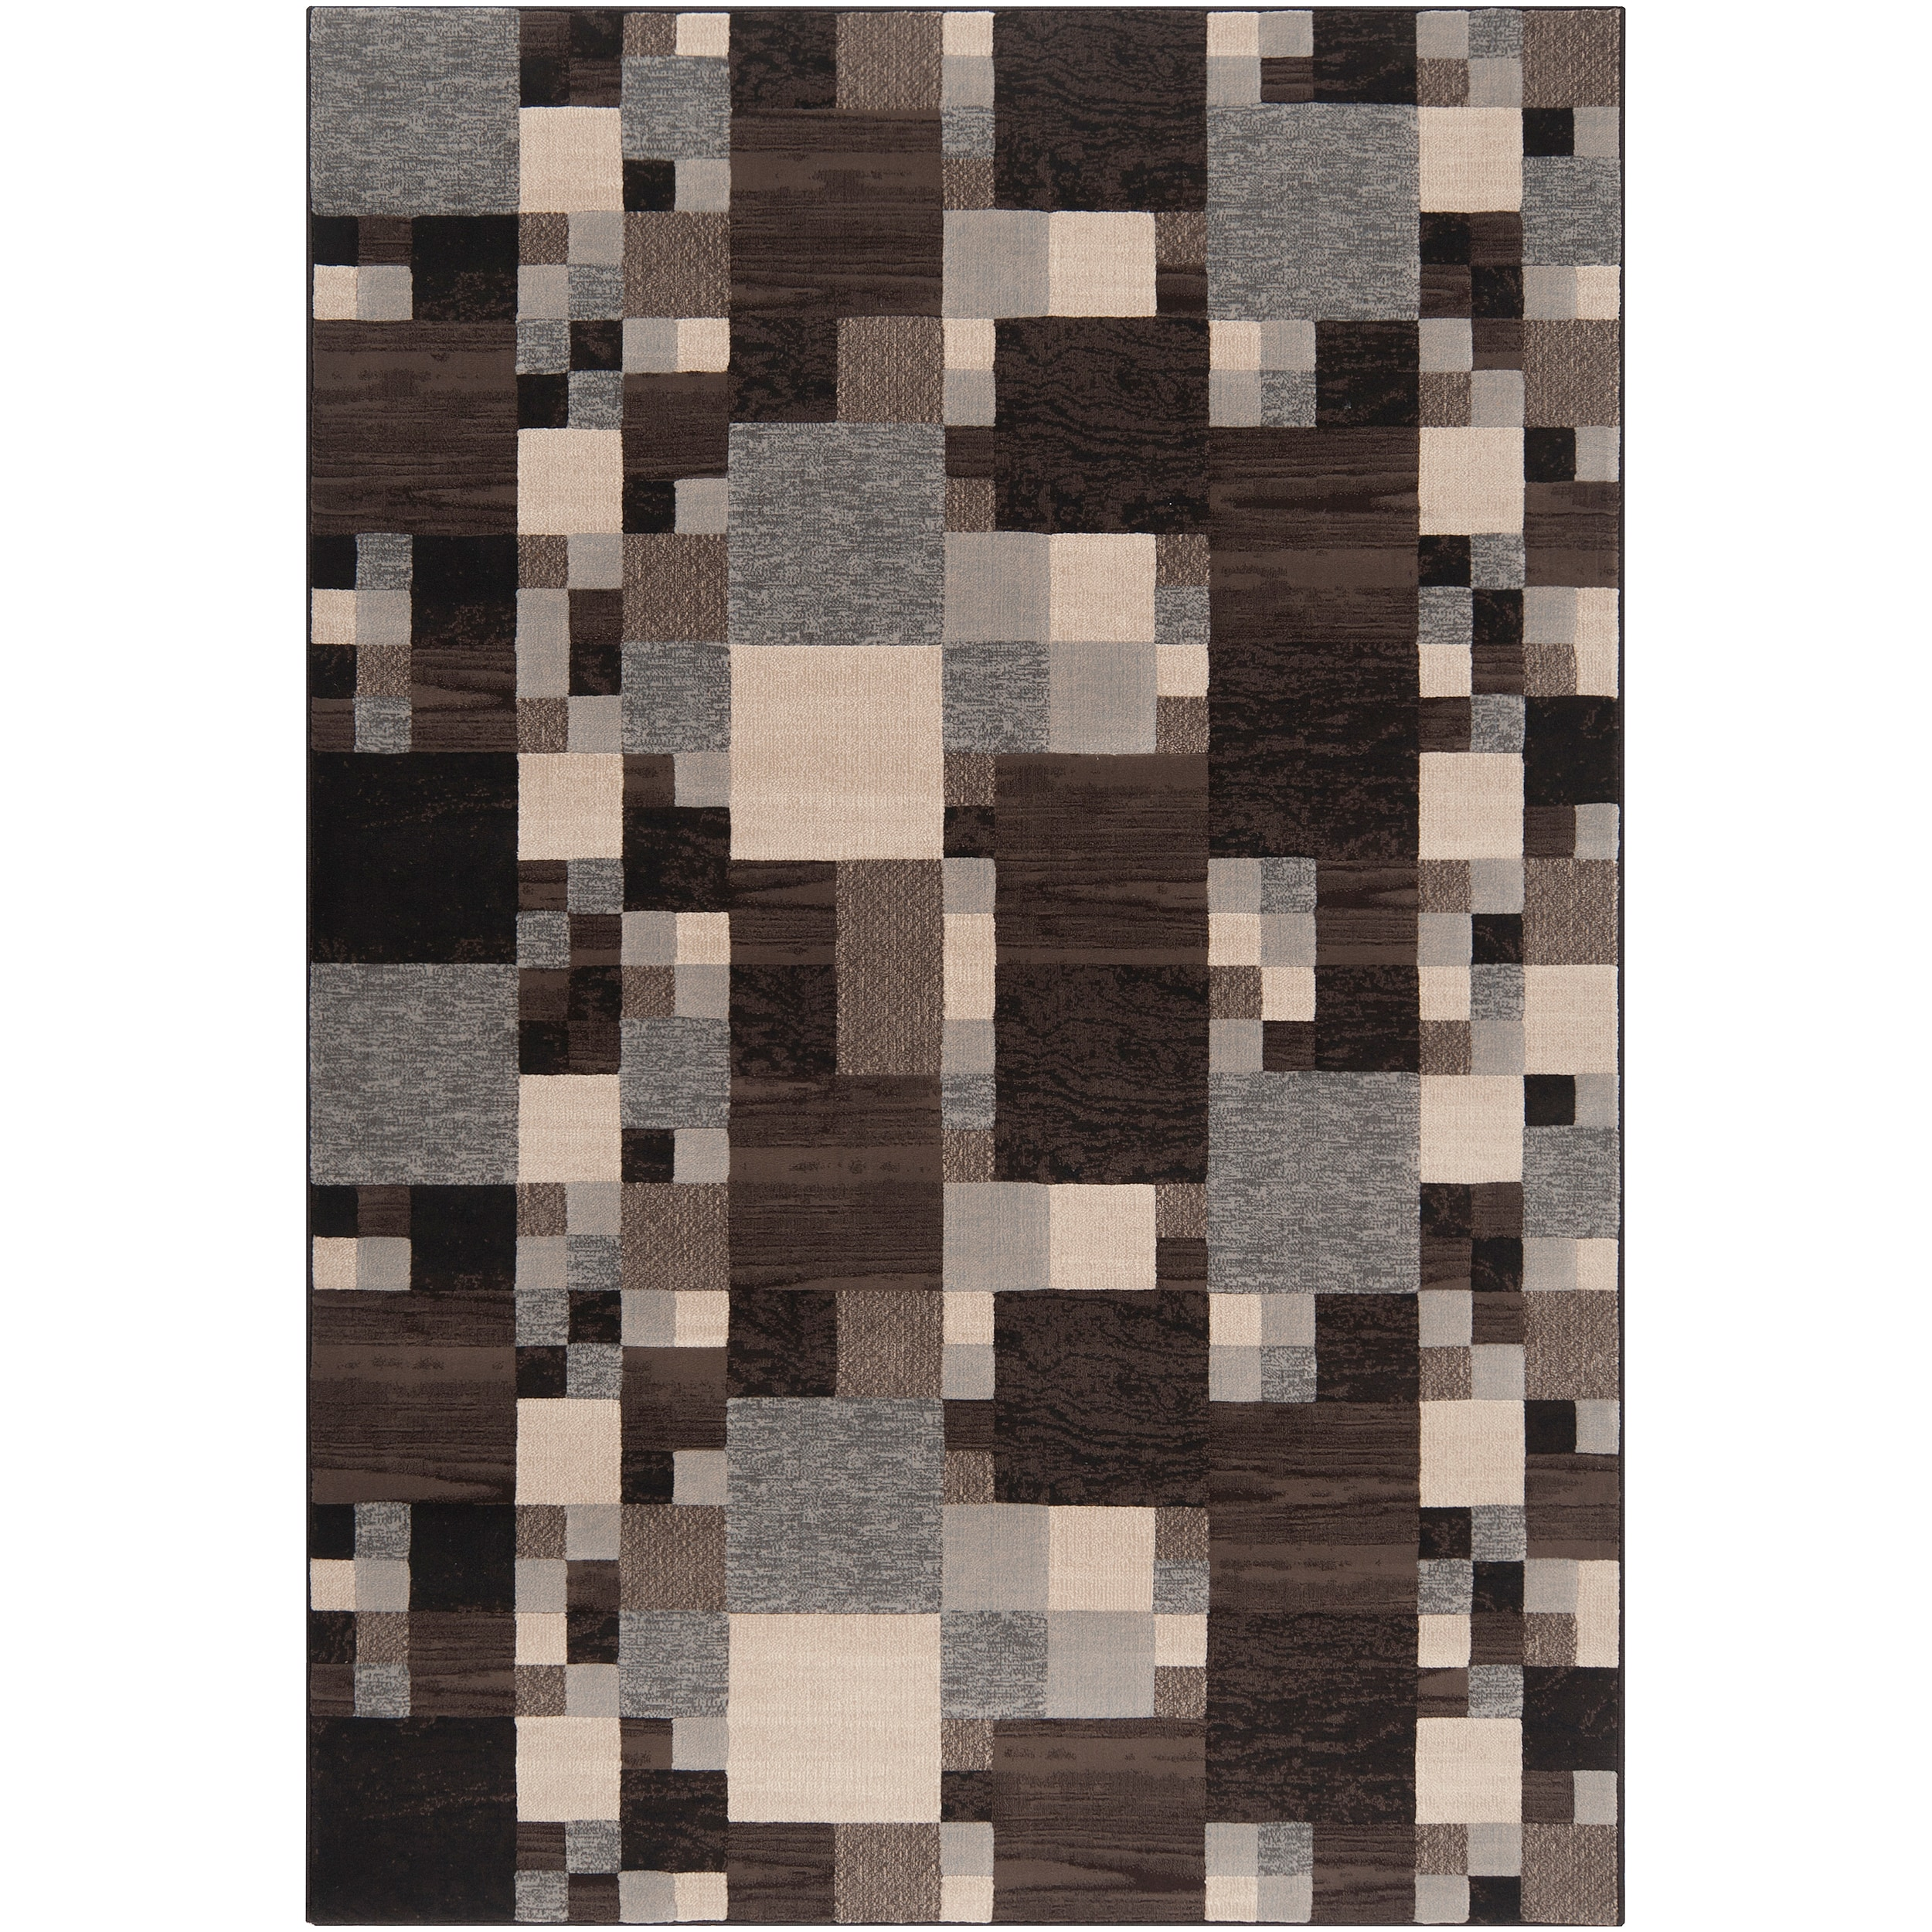 Woven Neutral Toned Haines Geometric Squares Rug (1'10 x 2'11)